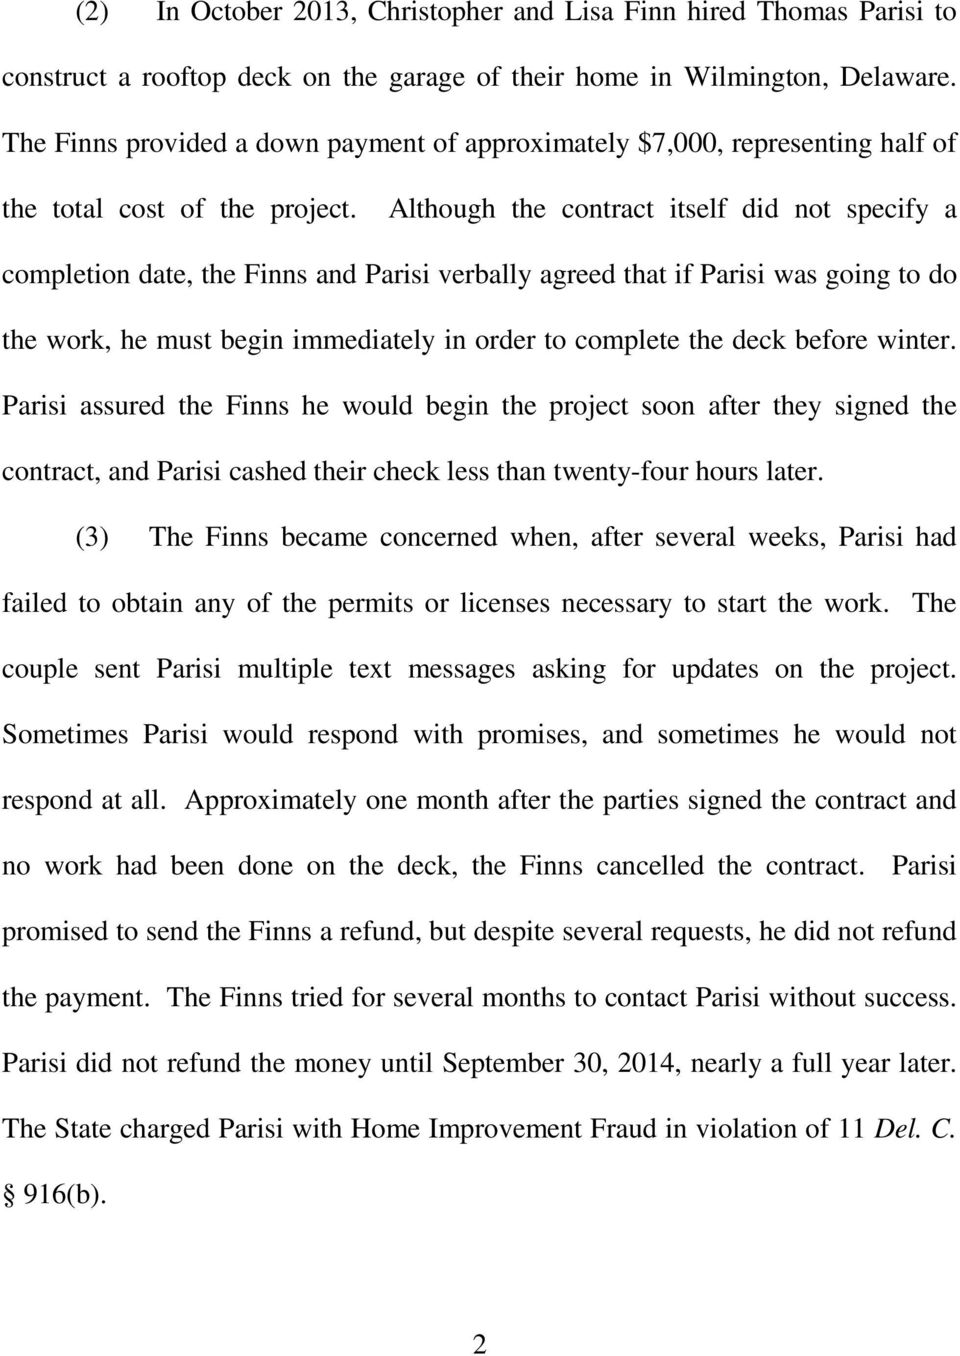 Although the contract itself did not specify a completion date, the Finns and Parisi verbally agreed that if Parisi was going to do the work, he must begin immediately in order to complete the deck